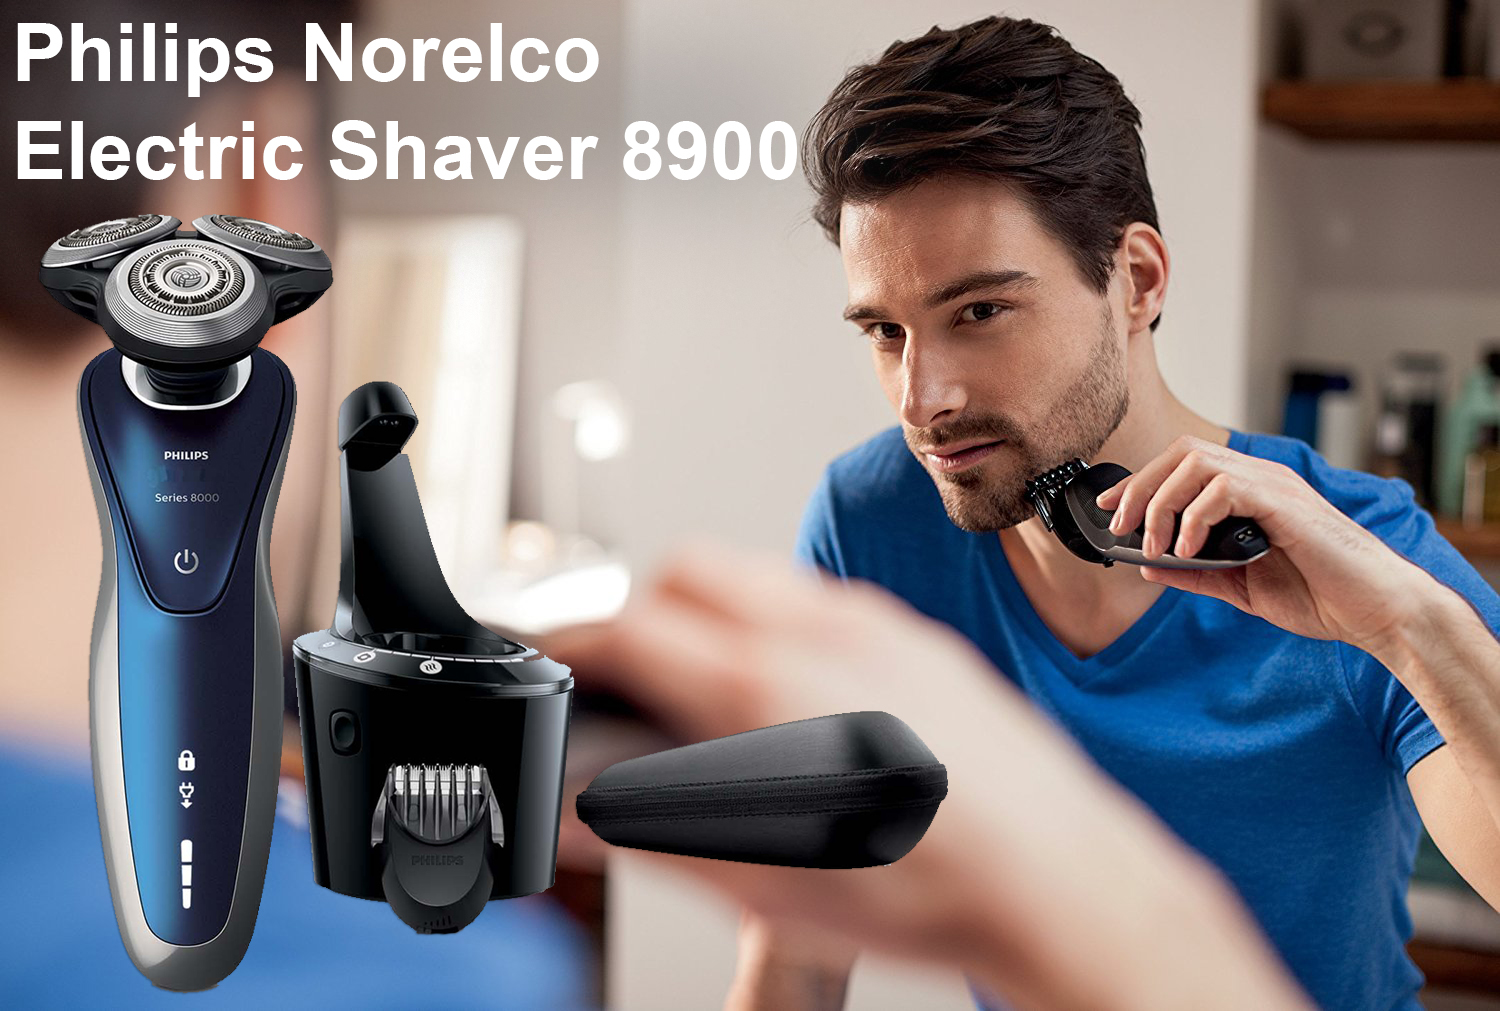 Philips Norelco Electric Shaver 8900 Model S8950/91 Review